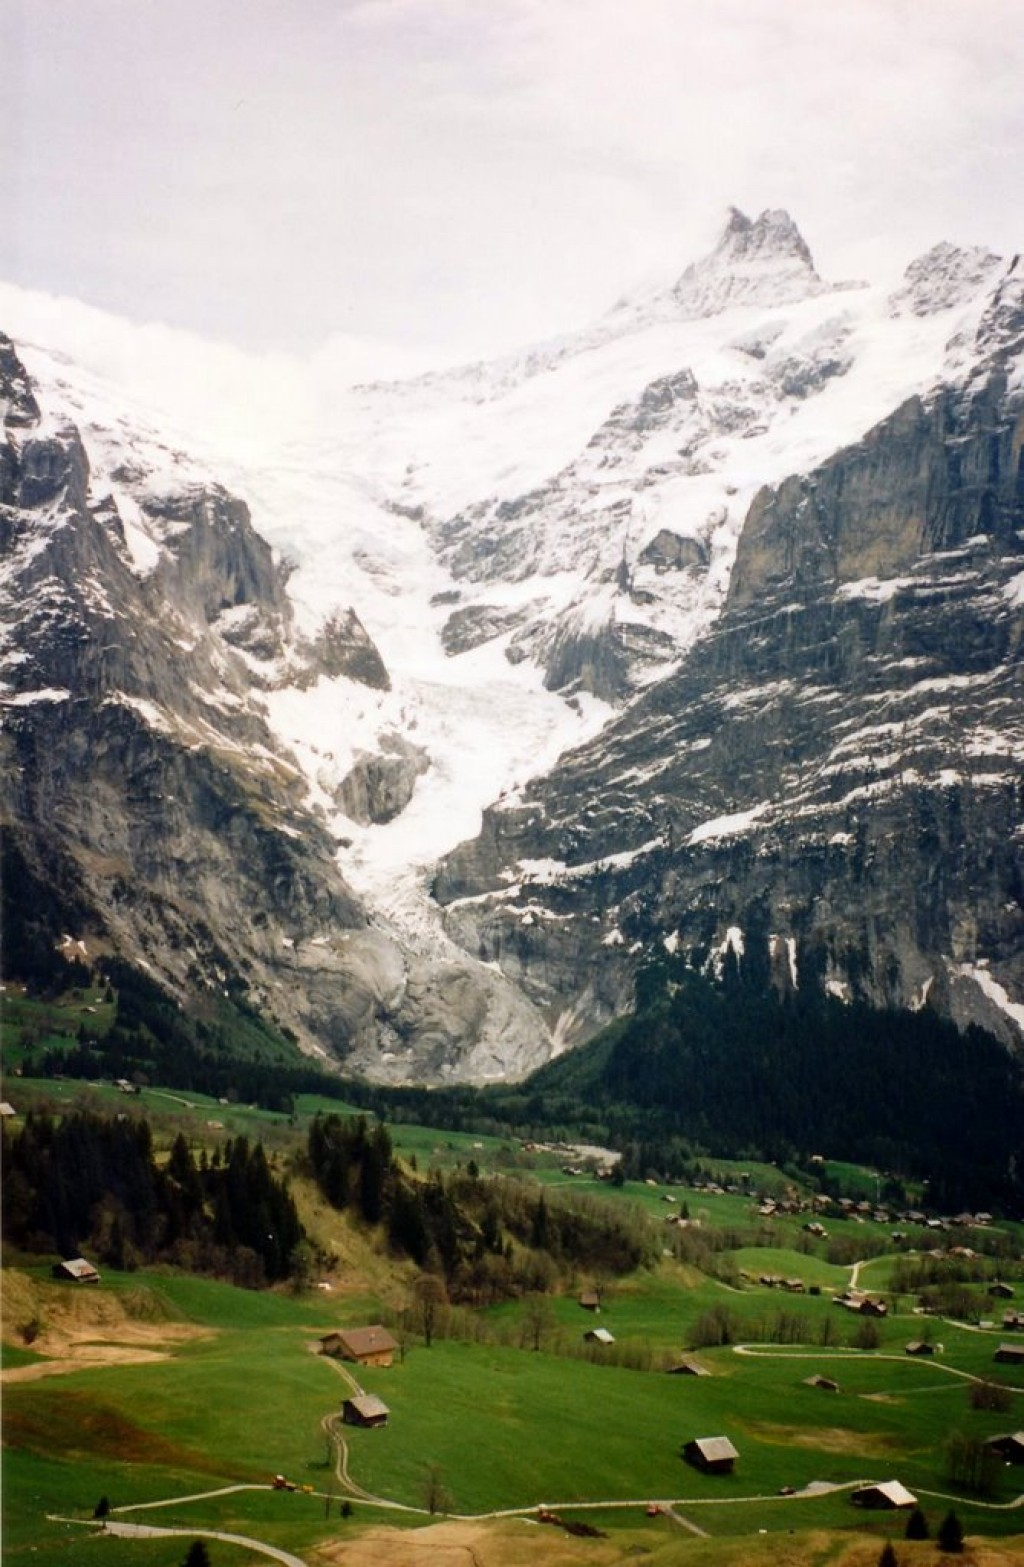 Hiking down from the Jungfrau